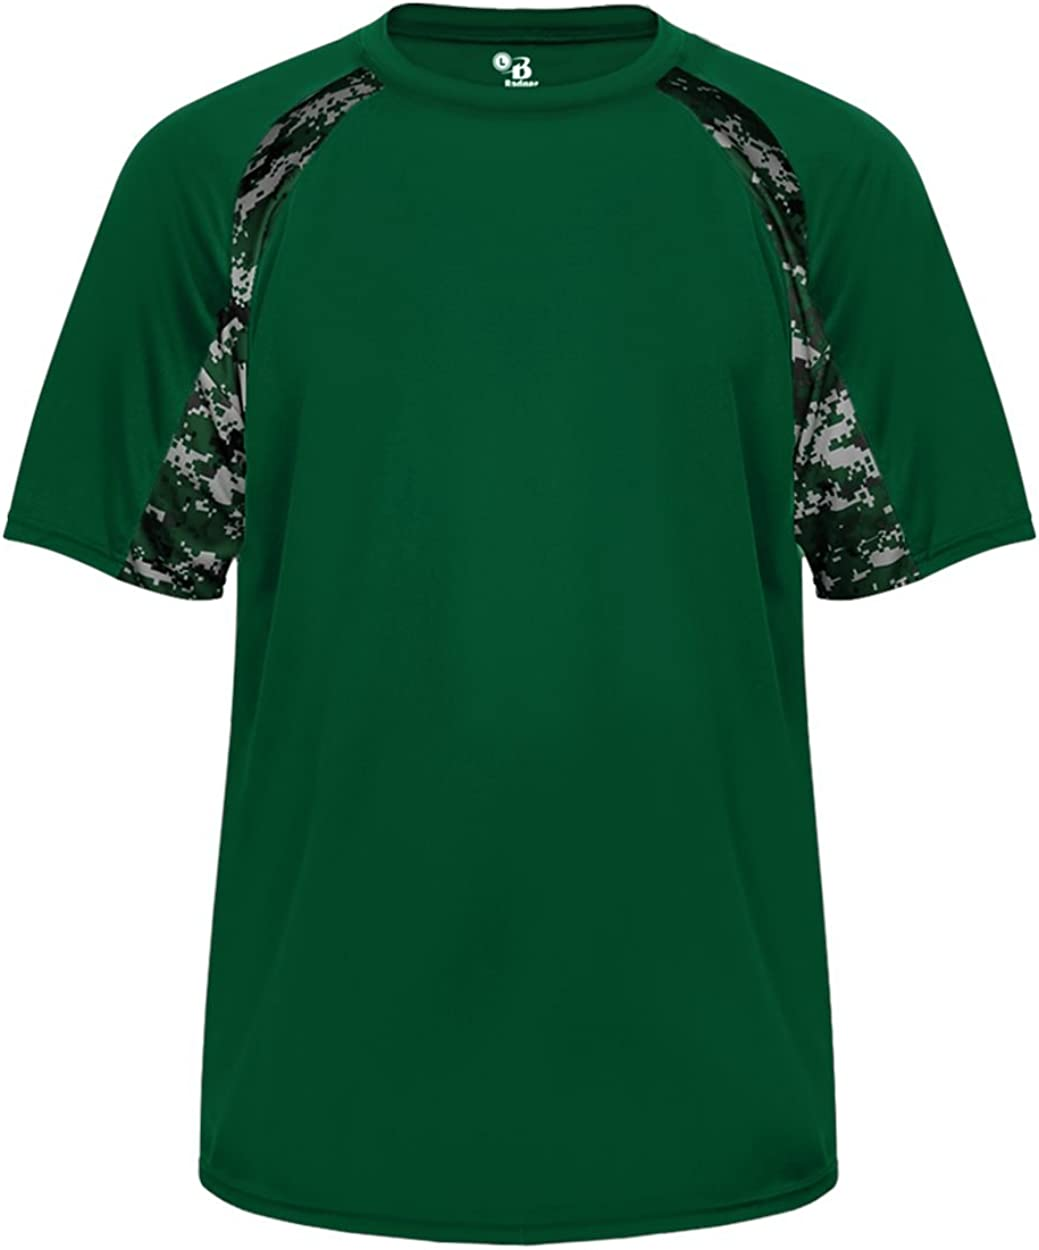 Badger Sport Forrest OFFicial mail Ranking TOP20 order Green Digi-Camo Sleeve Youth Short Large